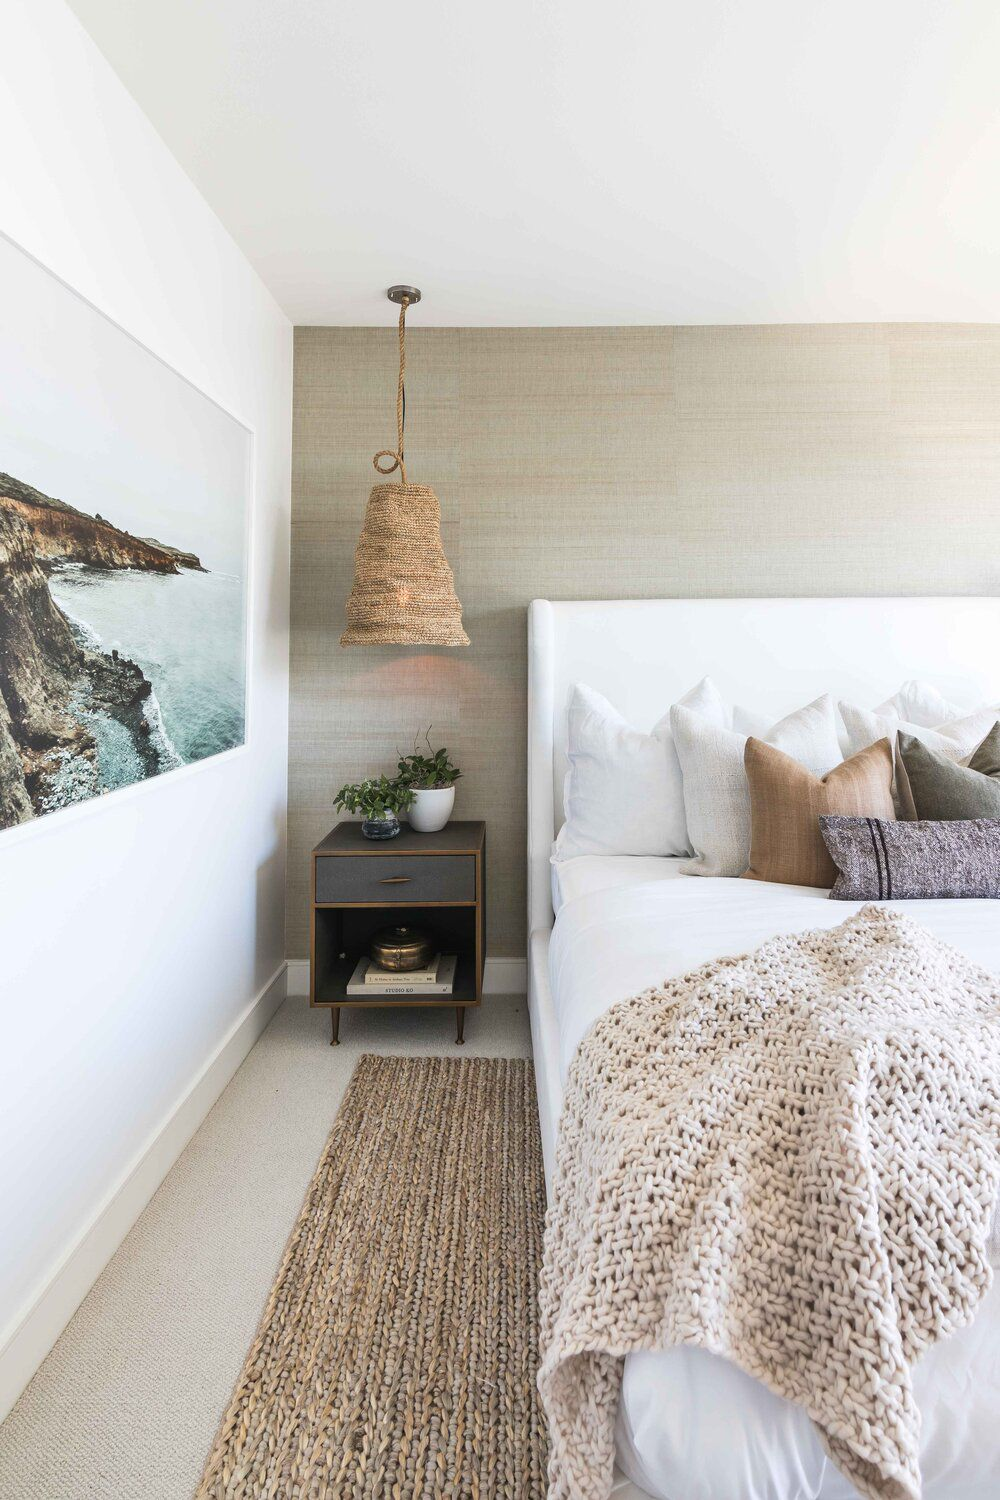 9 Beautiful Coastal Decor Ideas That Bring The Beach to You